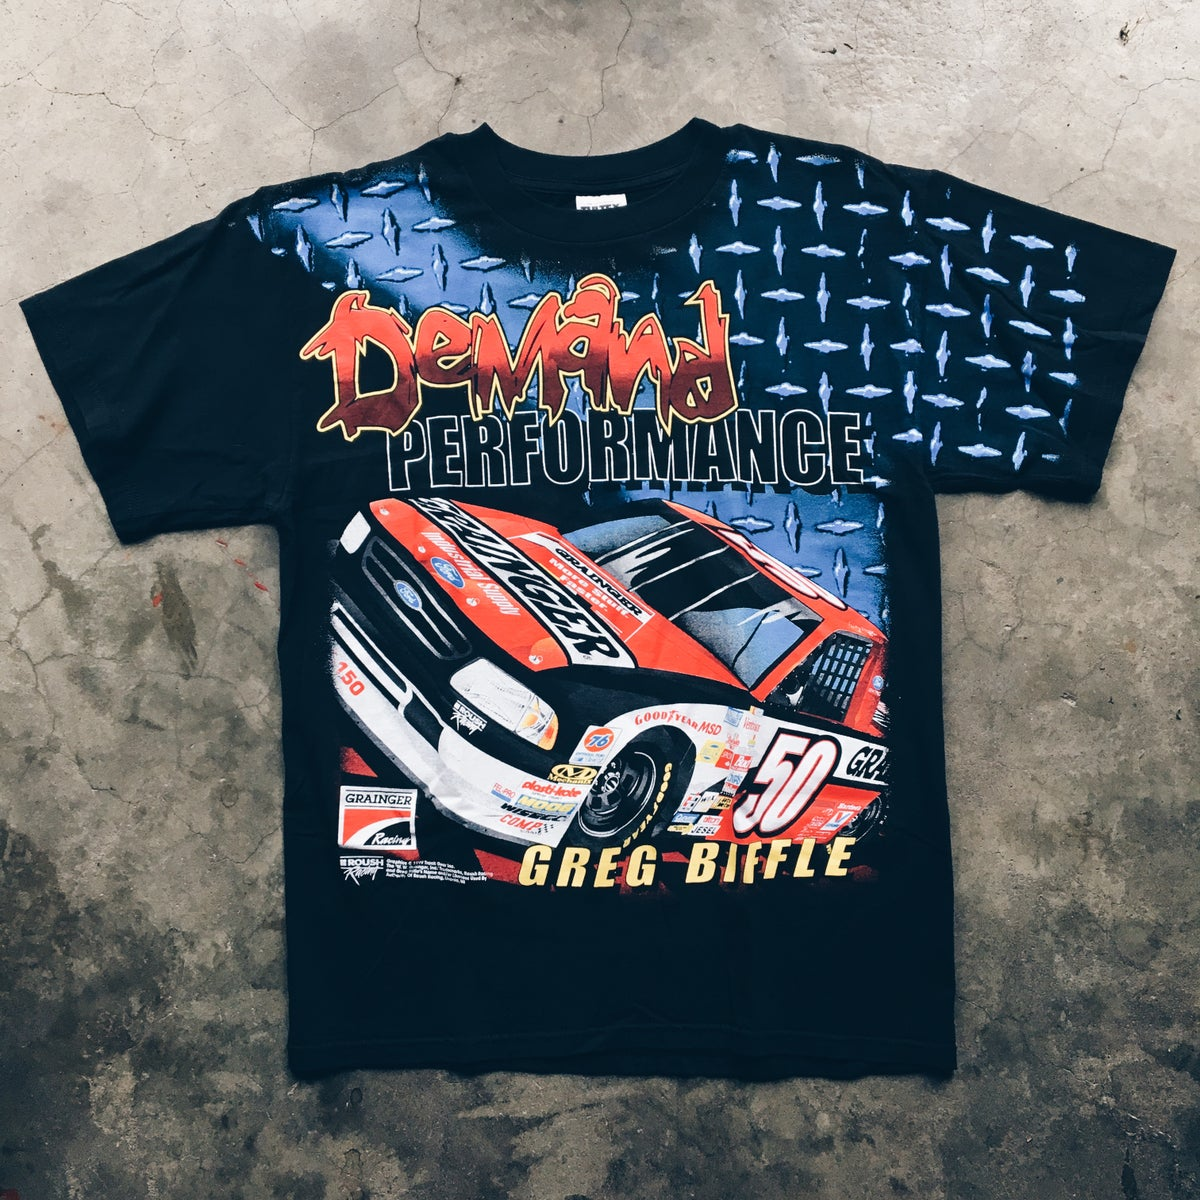 Image of Original 1999 Greg Biffle Racing Tee.